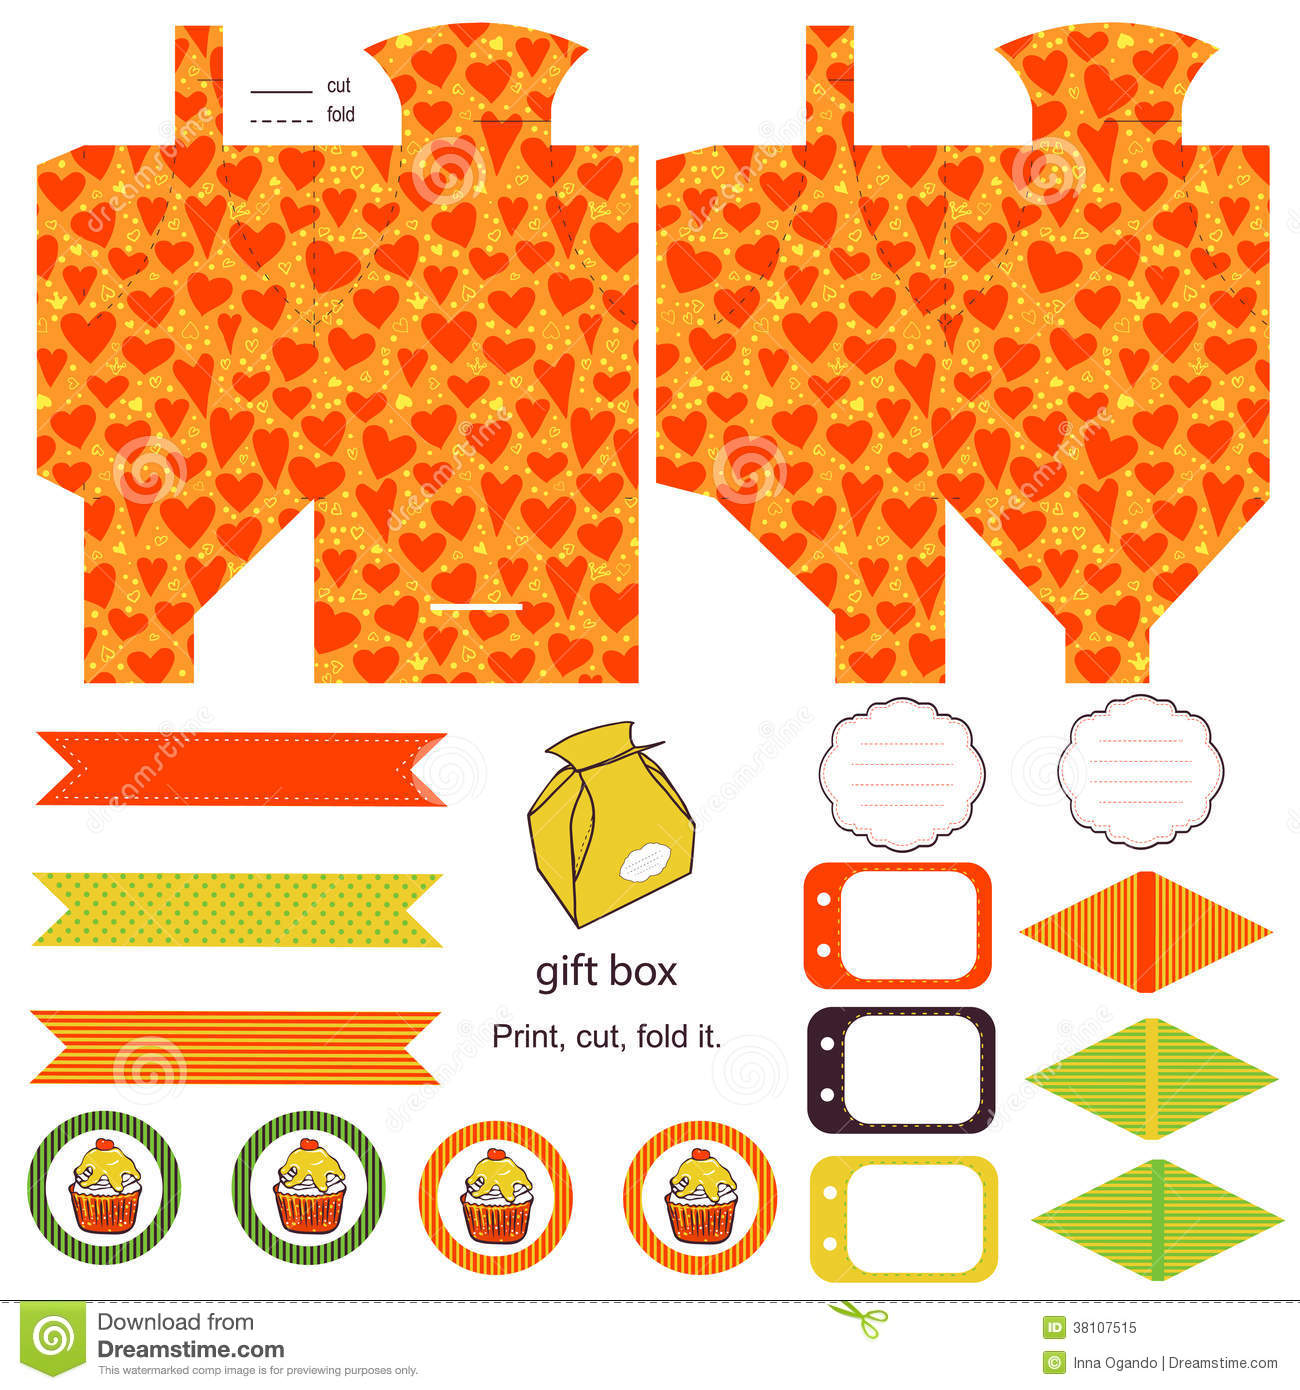 ... product box die cut. hearts pattern. Empty label. Designer template